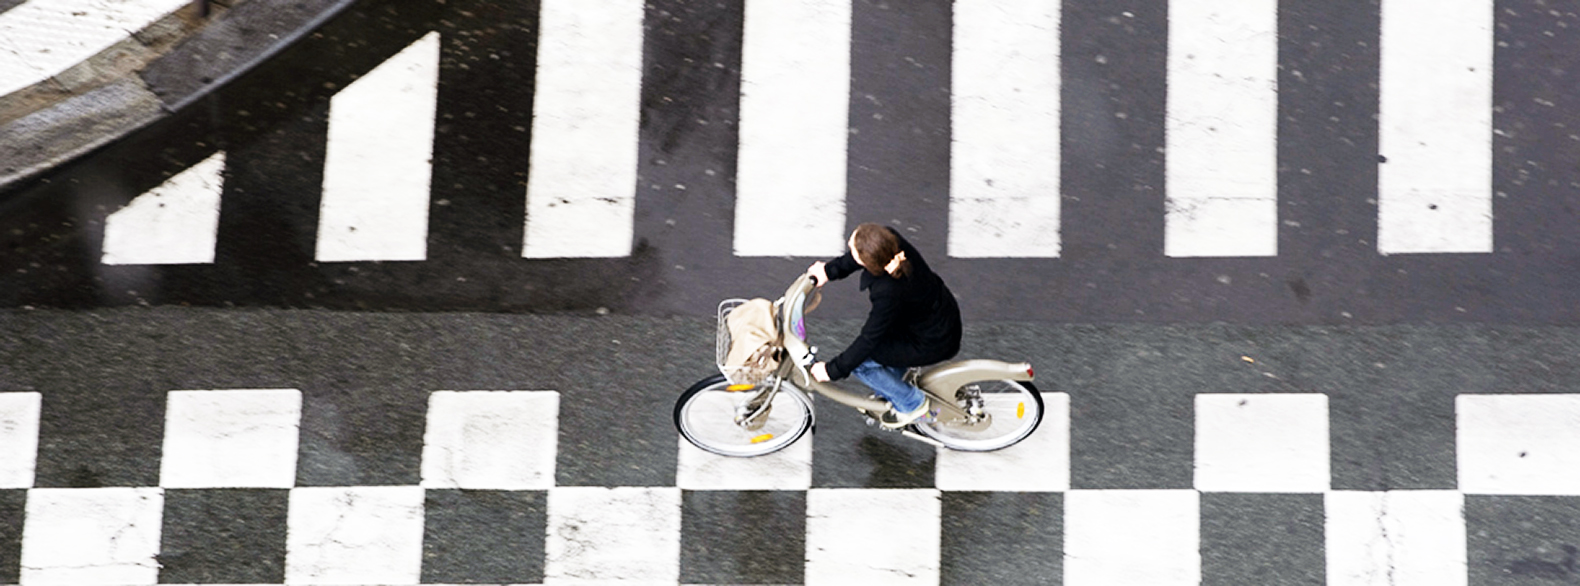 Paris opens first section of a 28-mile bicycle superhighway